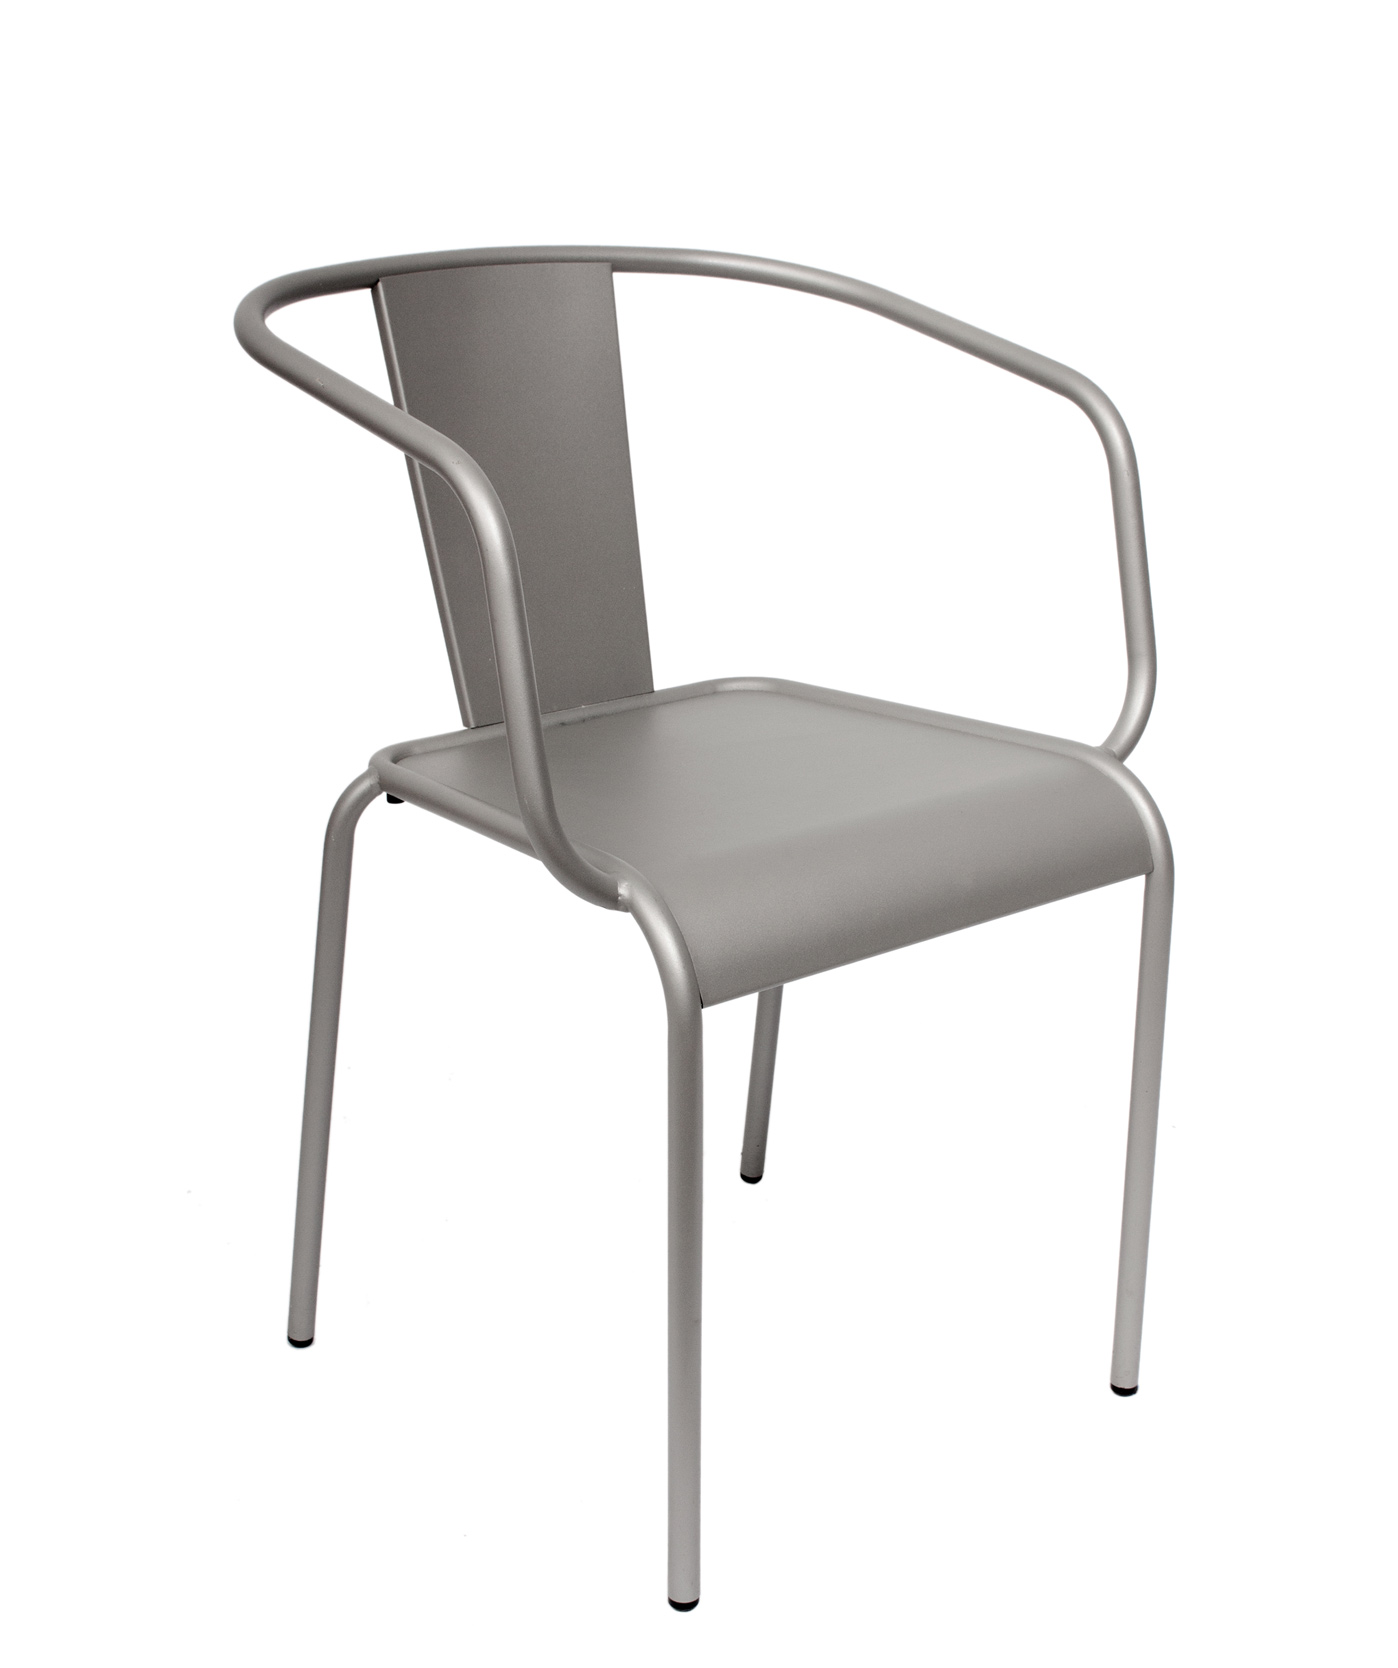 Tara Titanium Silver Steel Outdoor Arm Chair